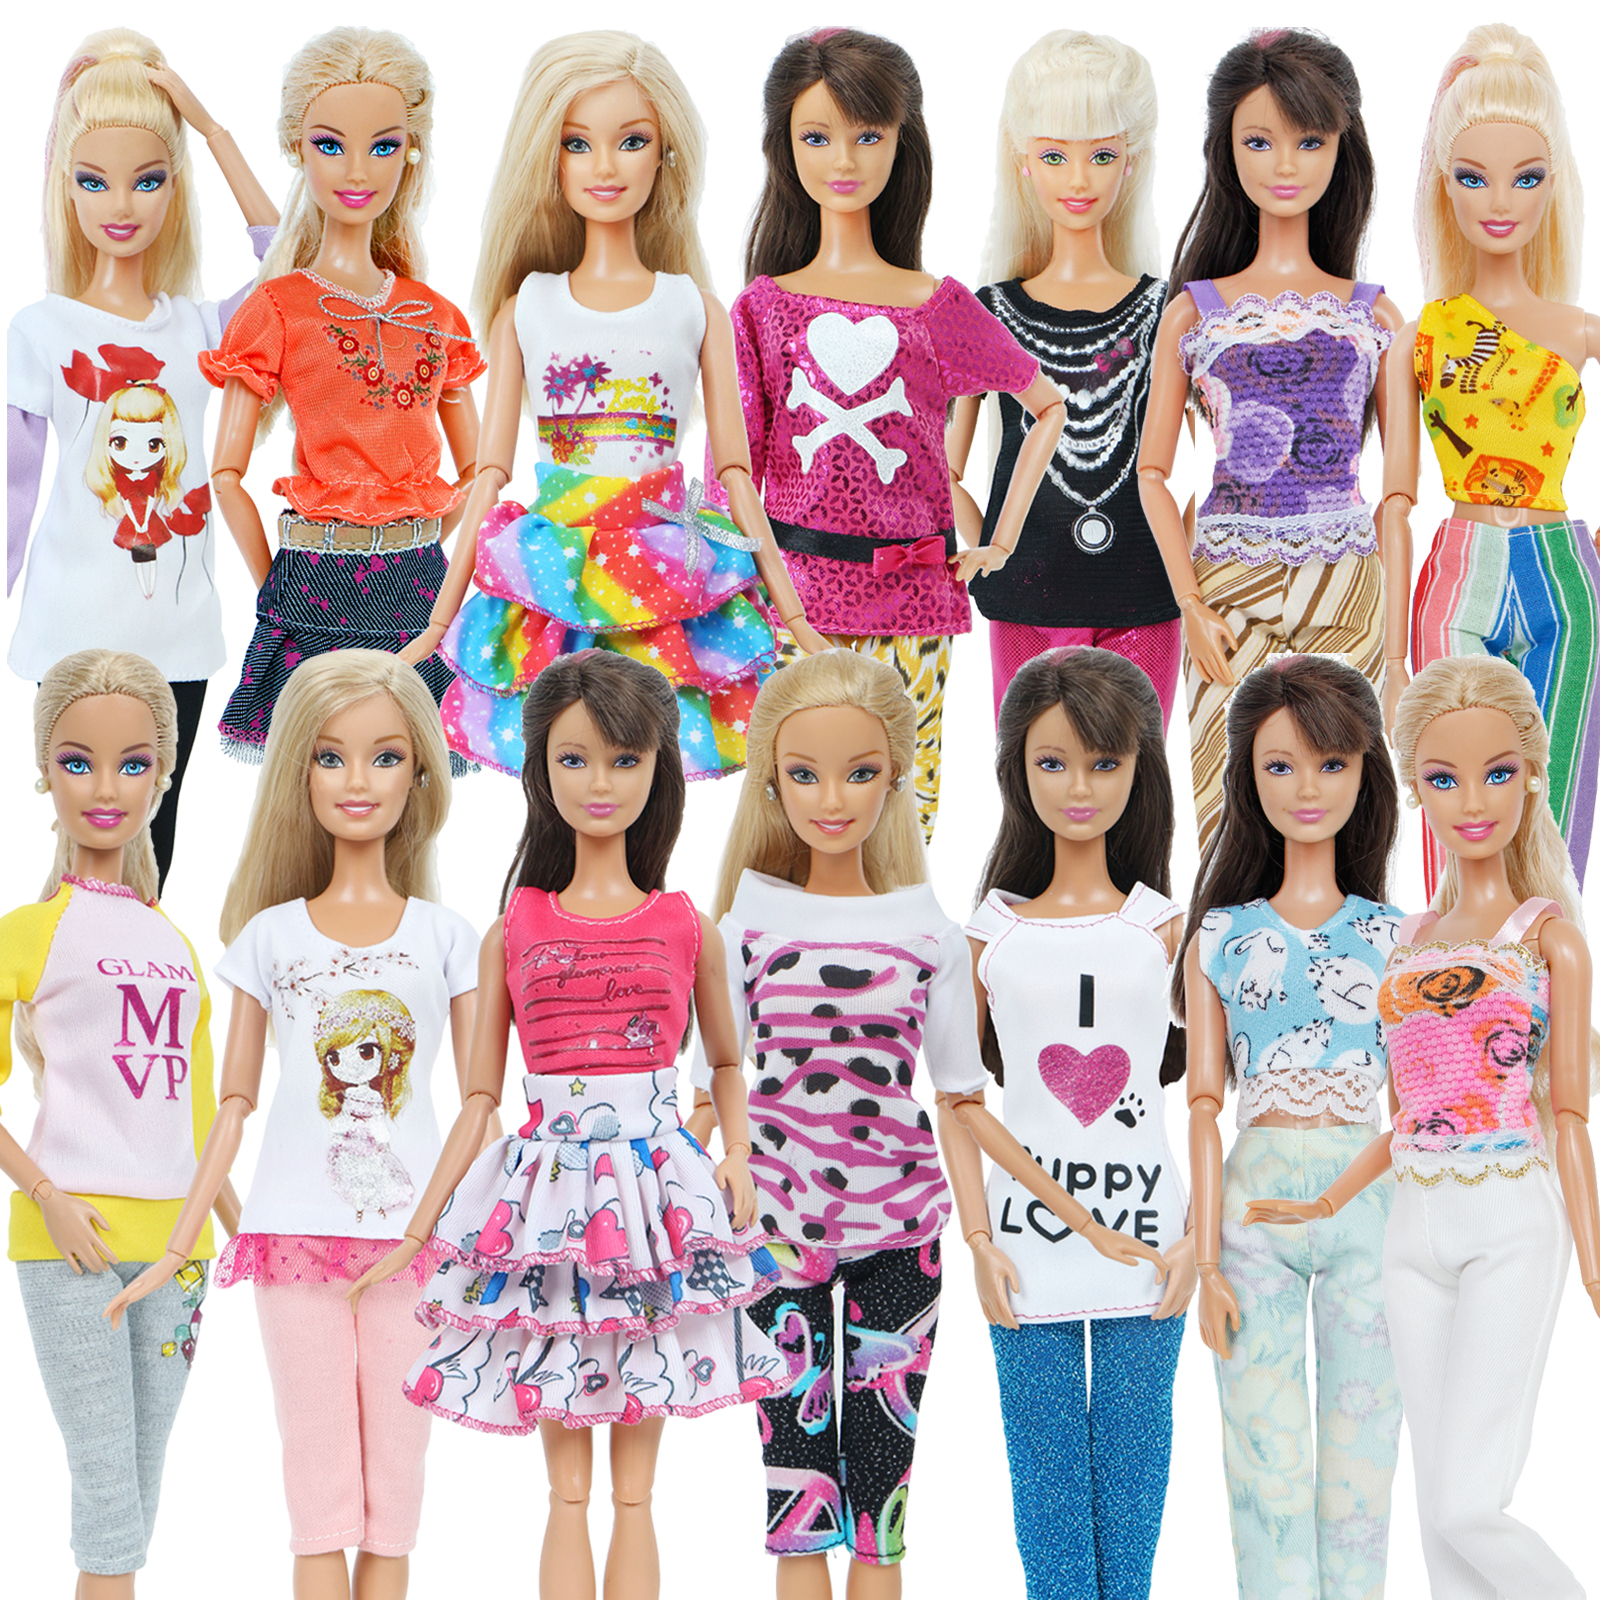 5 Sets Hangmade Mixed Style Outfits Mini Dress Blouse Pants Cute Skirts Tops Clothes For Barbie Doll Accessories Kids Toy